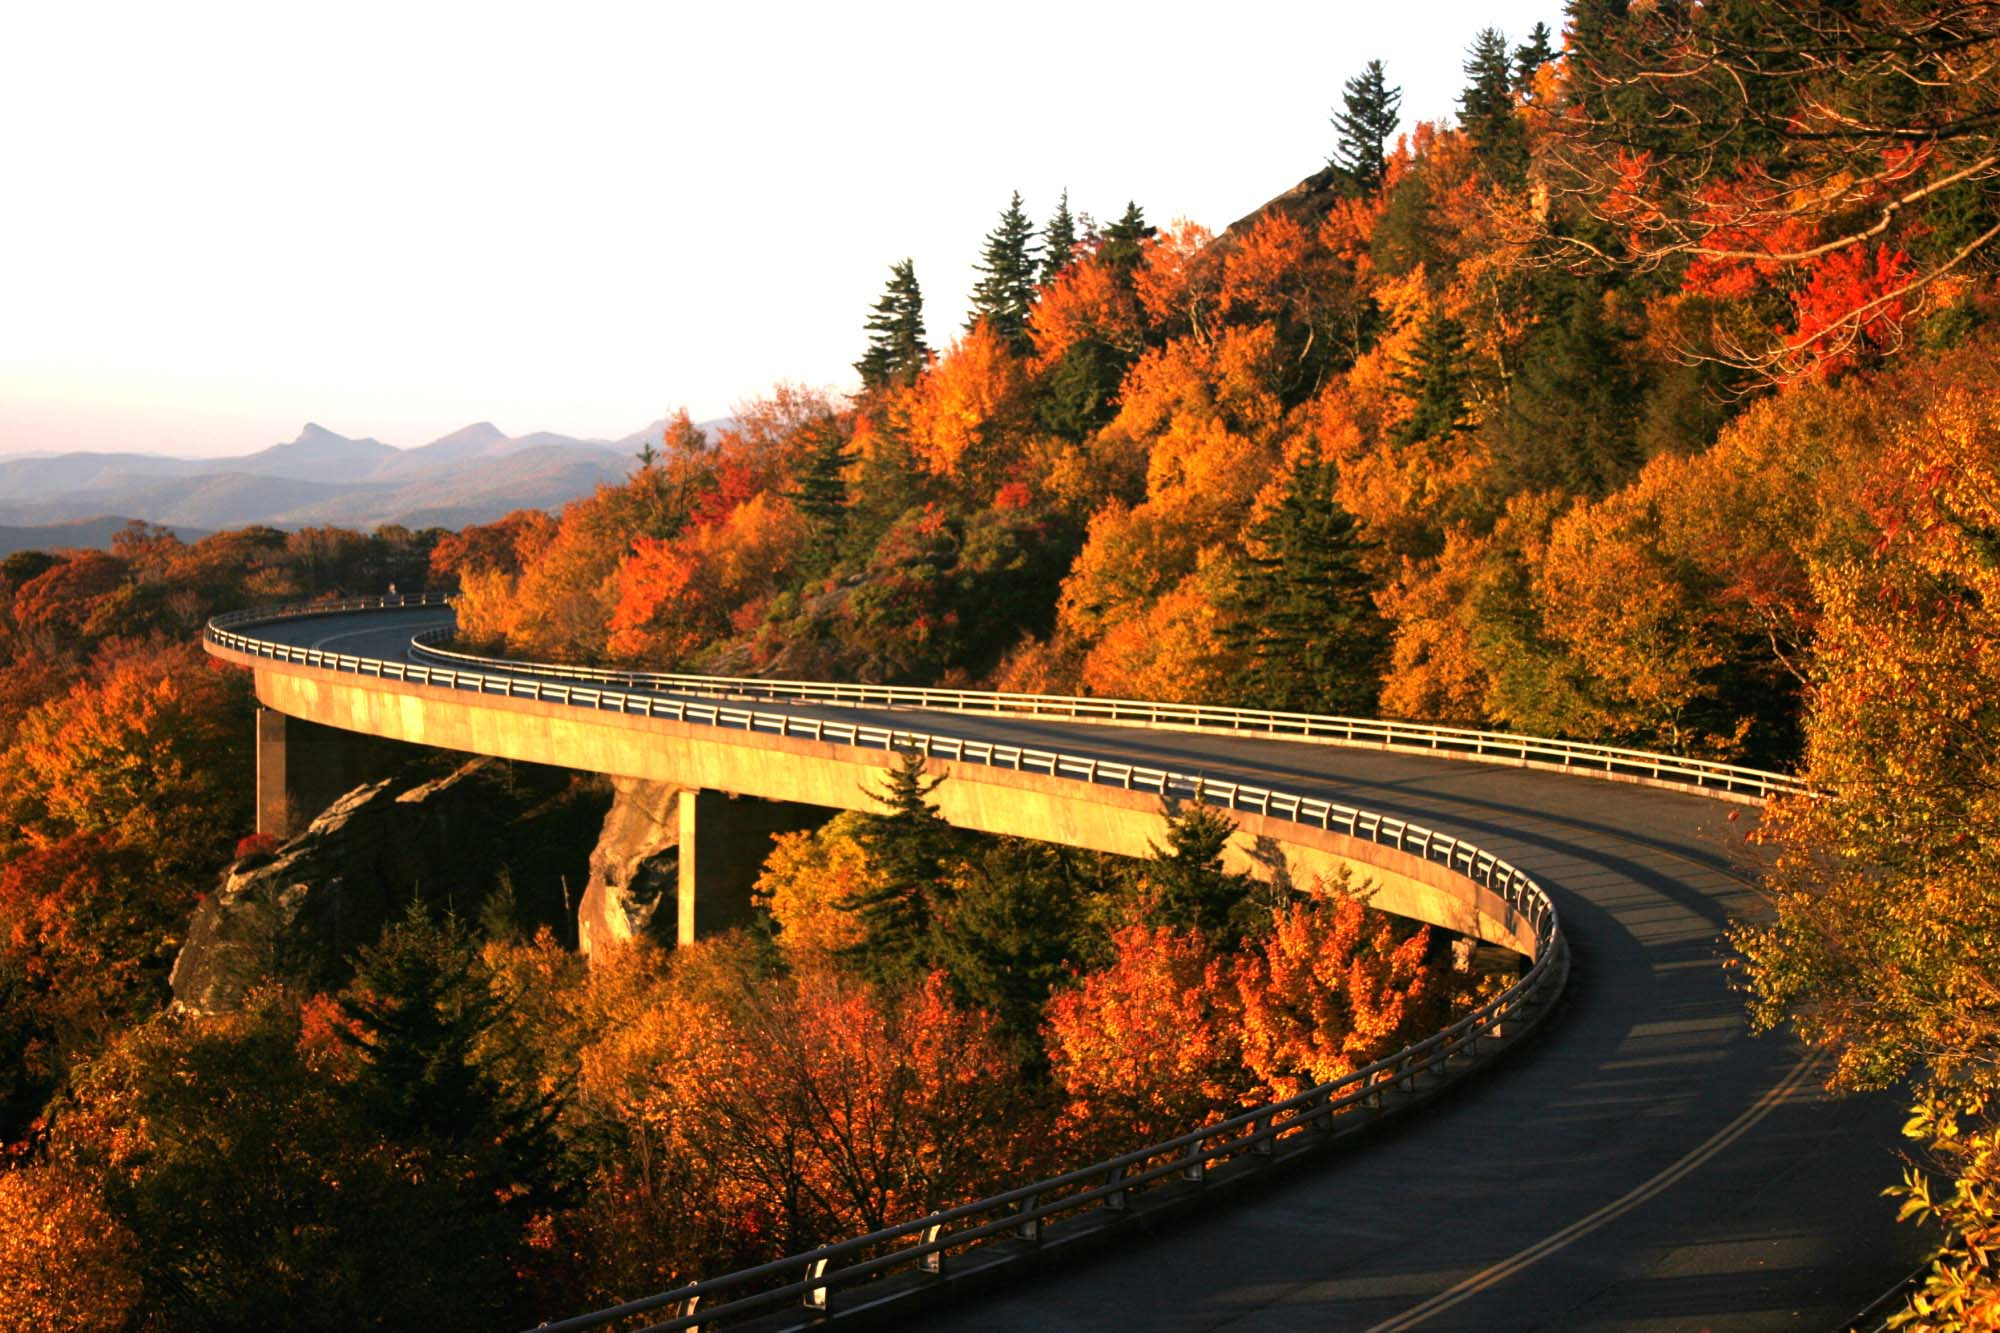 25) The Blue Ridge Parkway (Va & SC) which I drove along